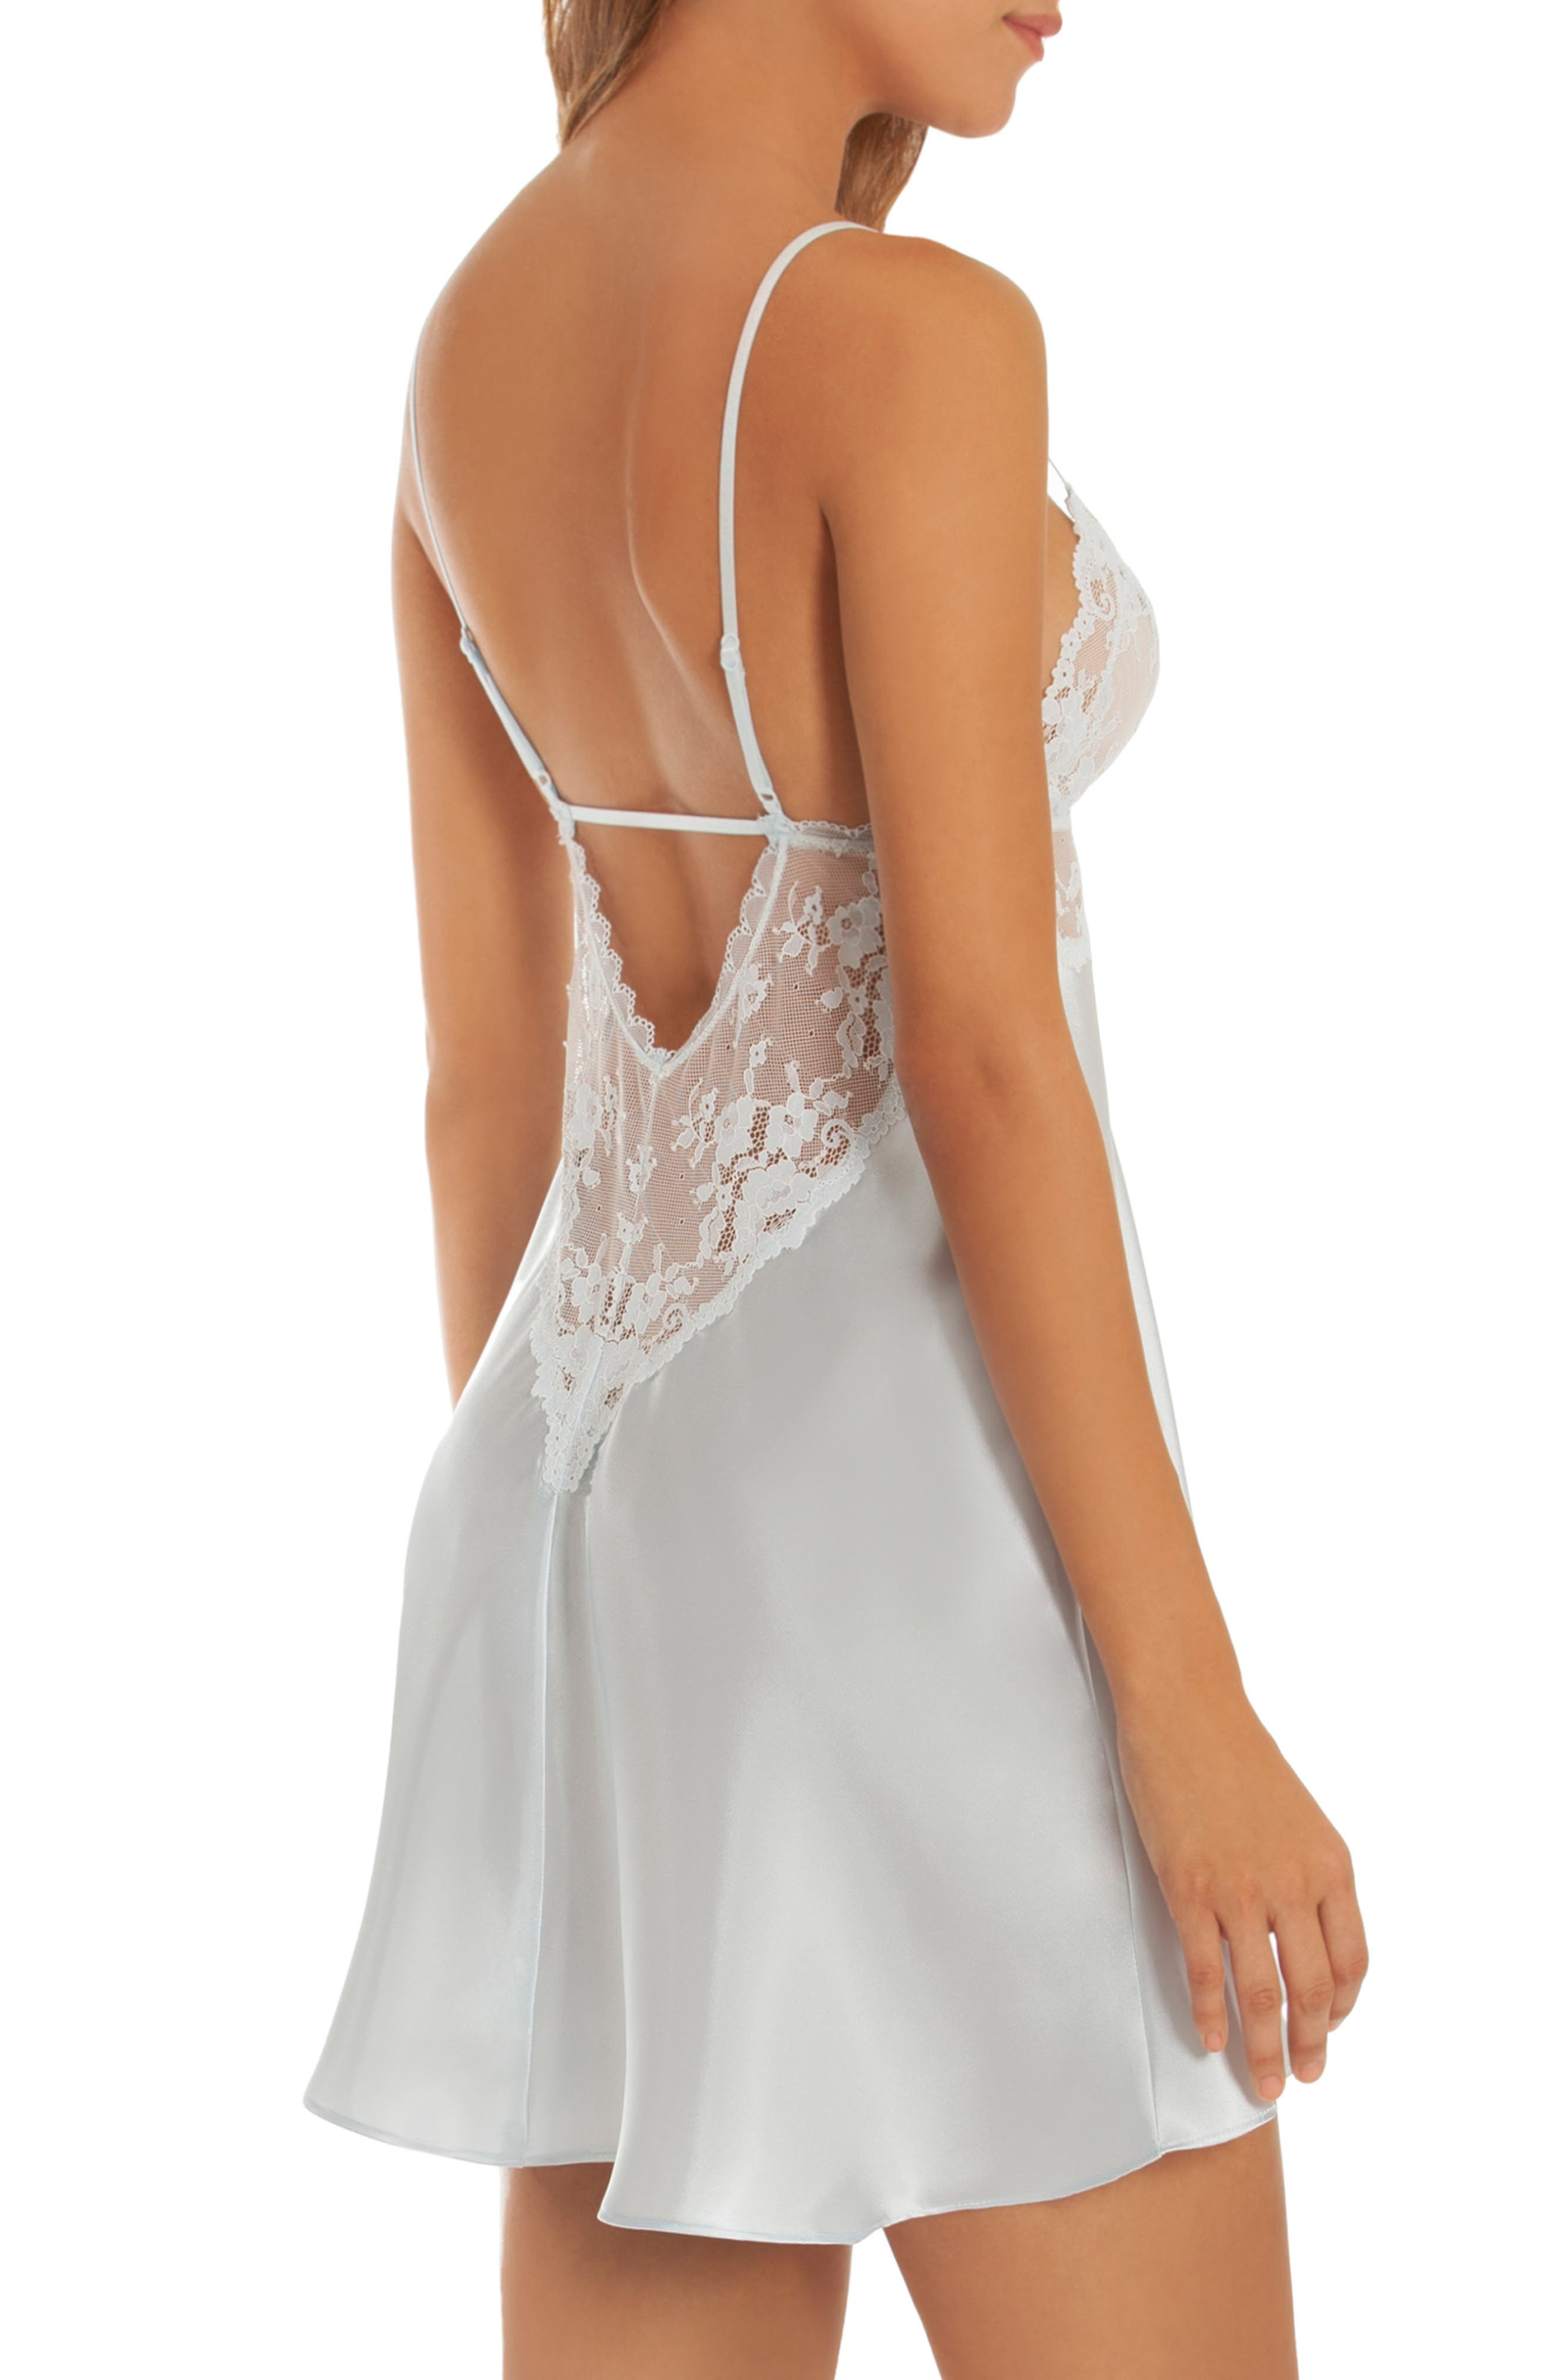 IN BLOOM BY JONQUIL,                             Lace & Satin Chemise,                             Alternate thumbnail 2, color,                             BLUE